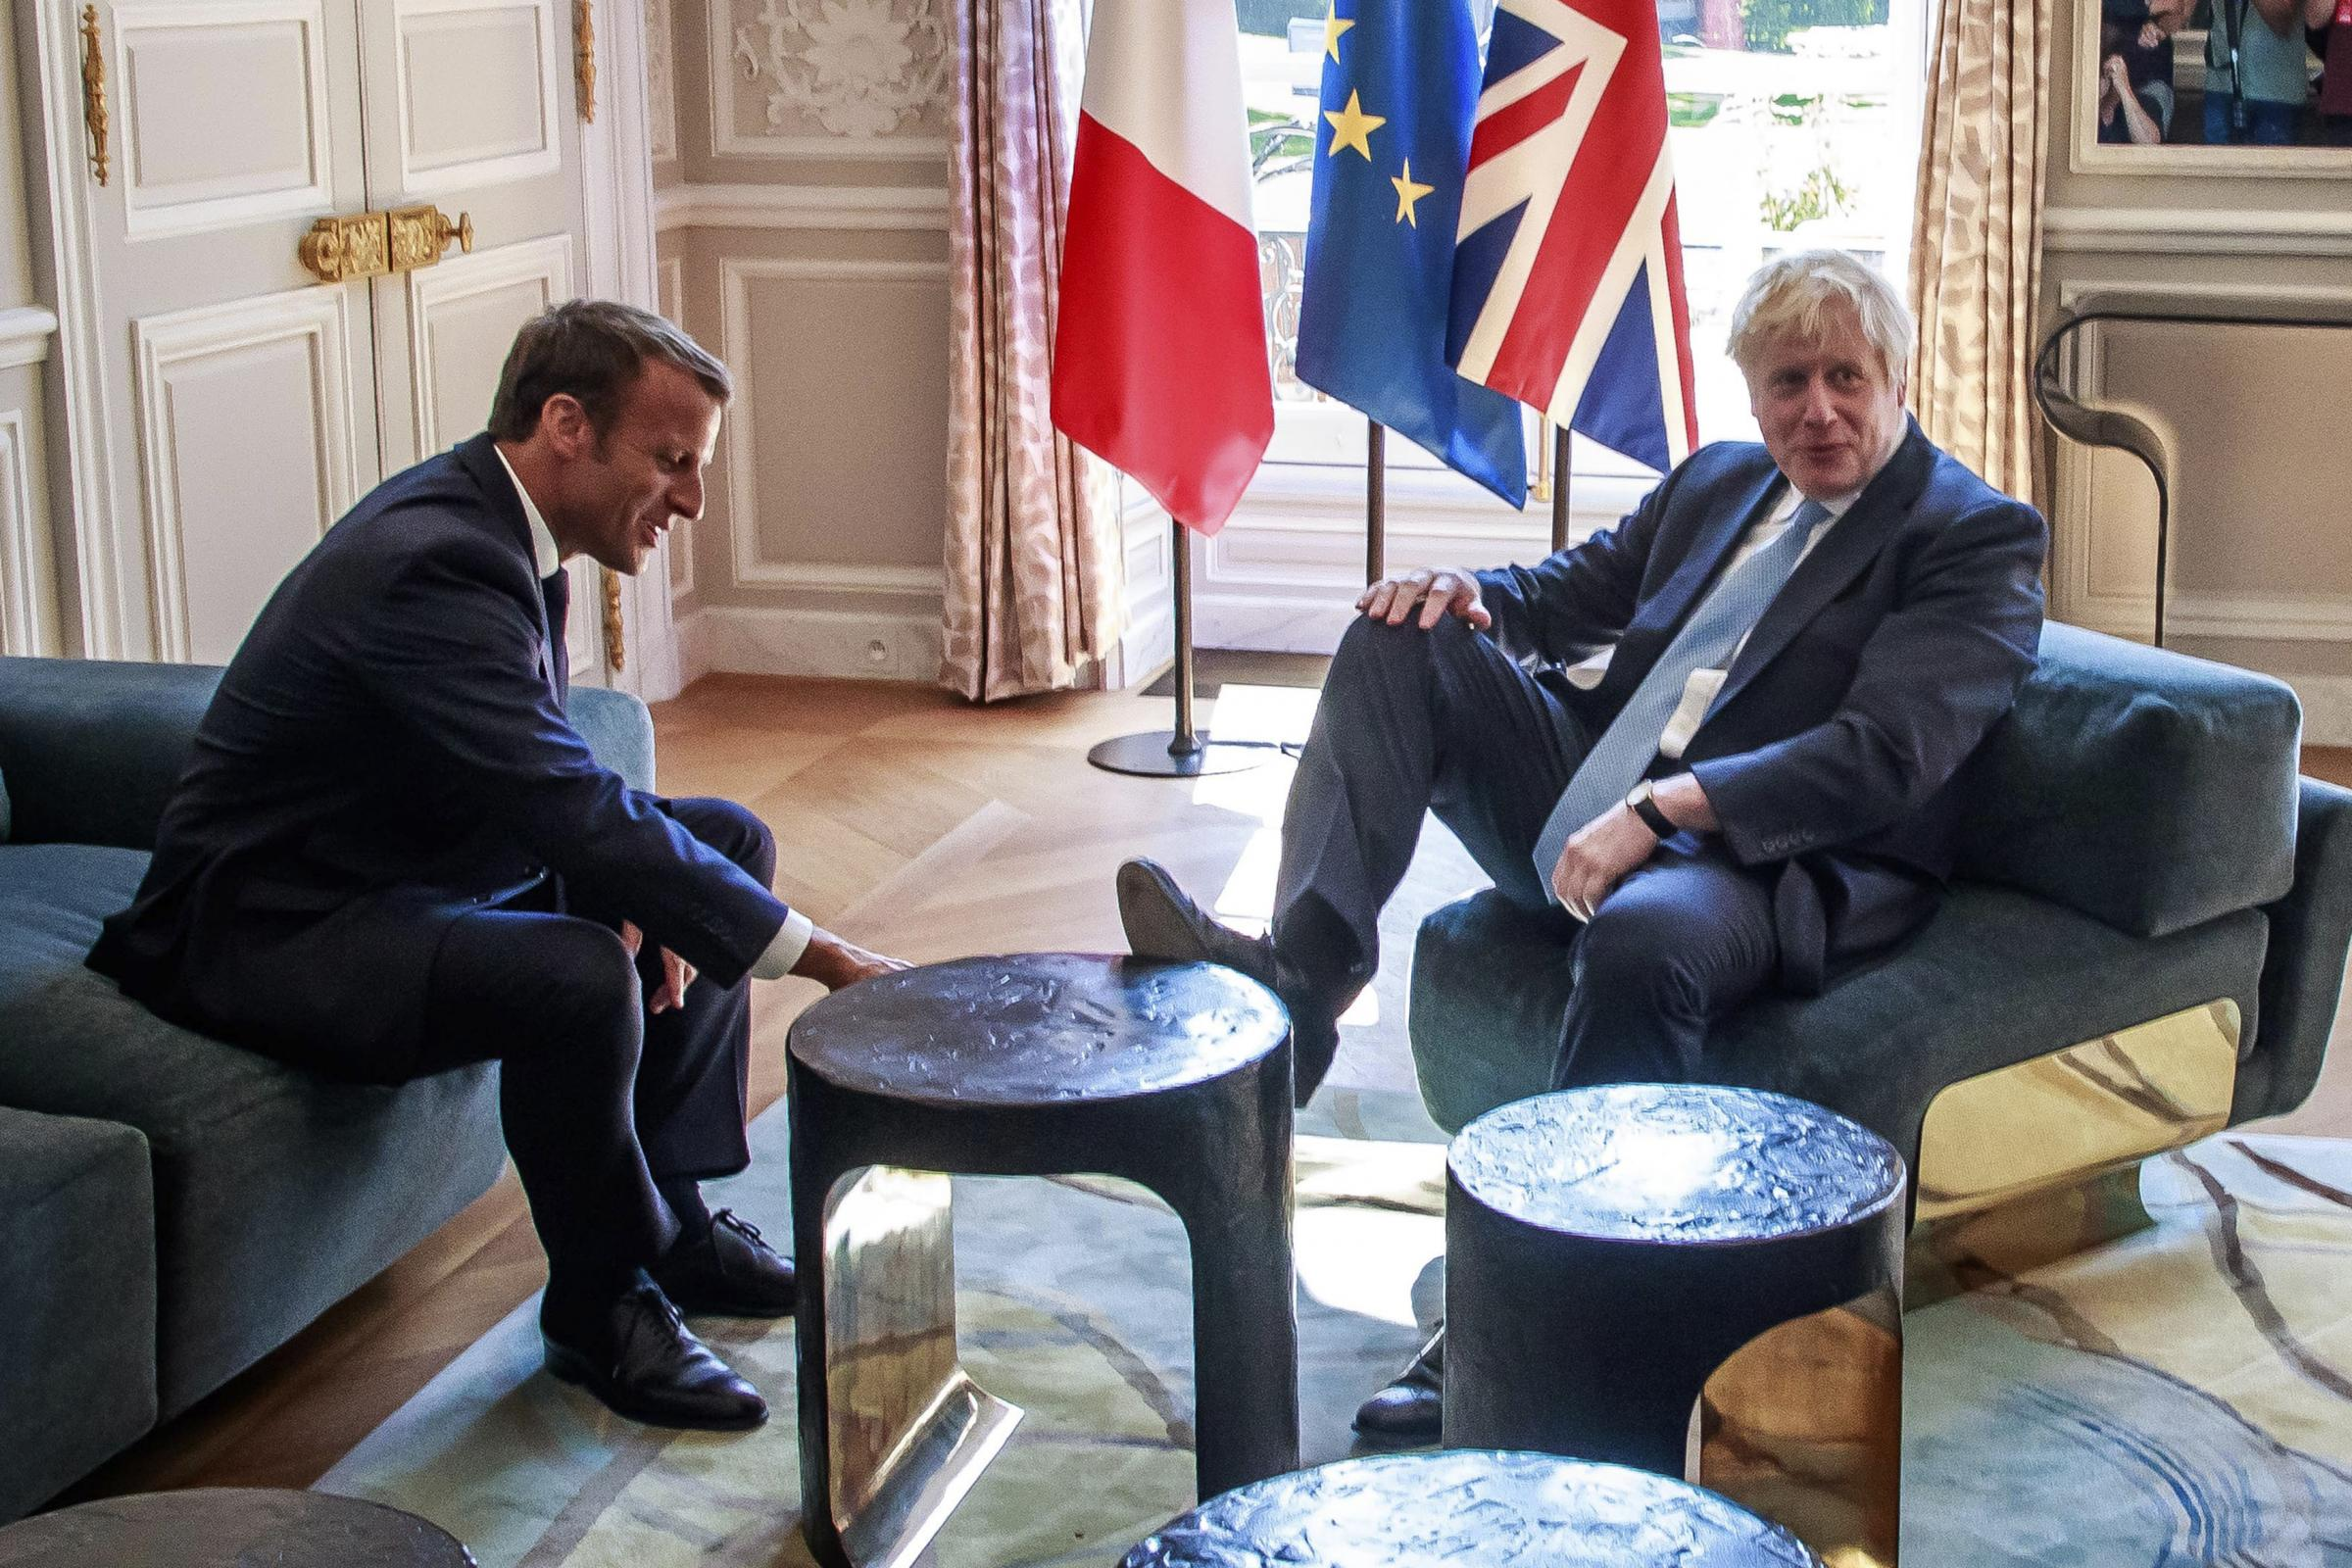 Boris Johnson branded an embarrassment after putting feet on Macron's table